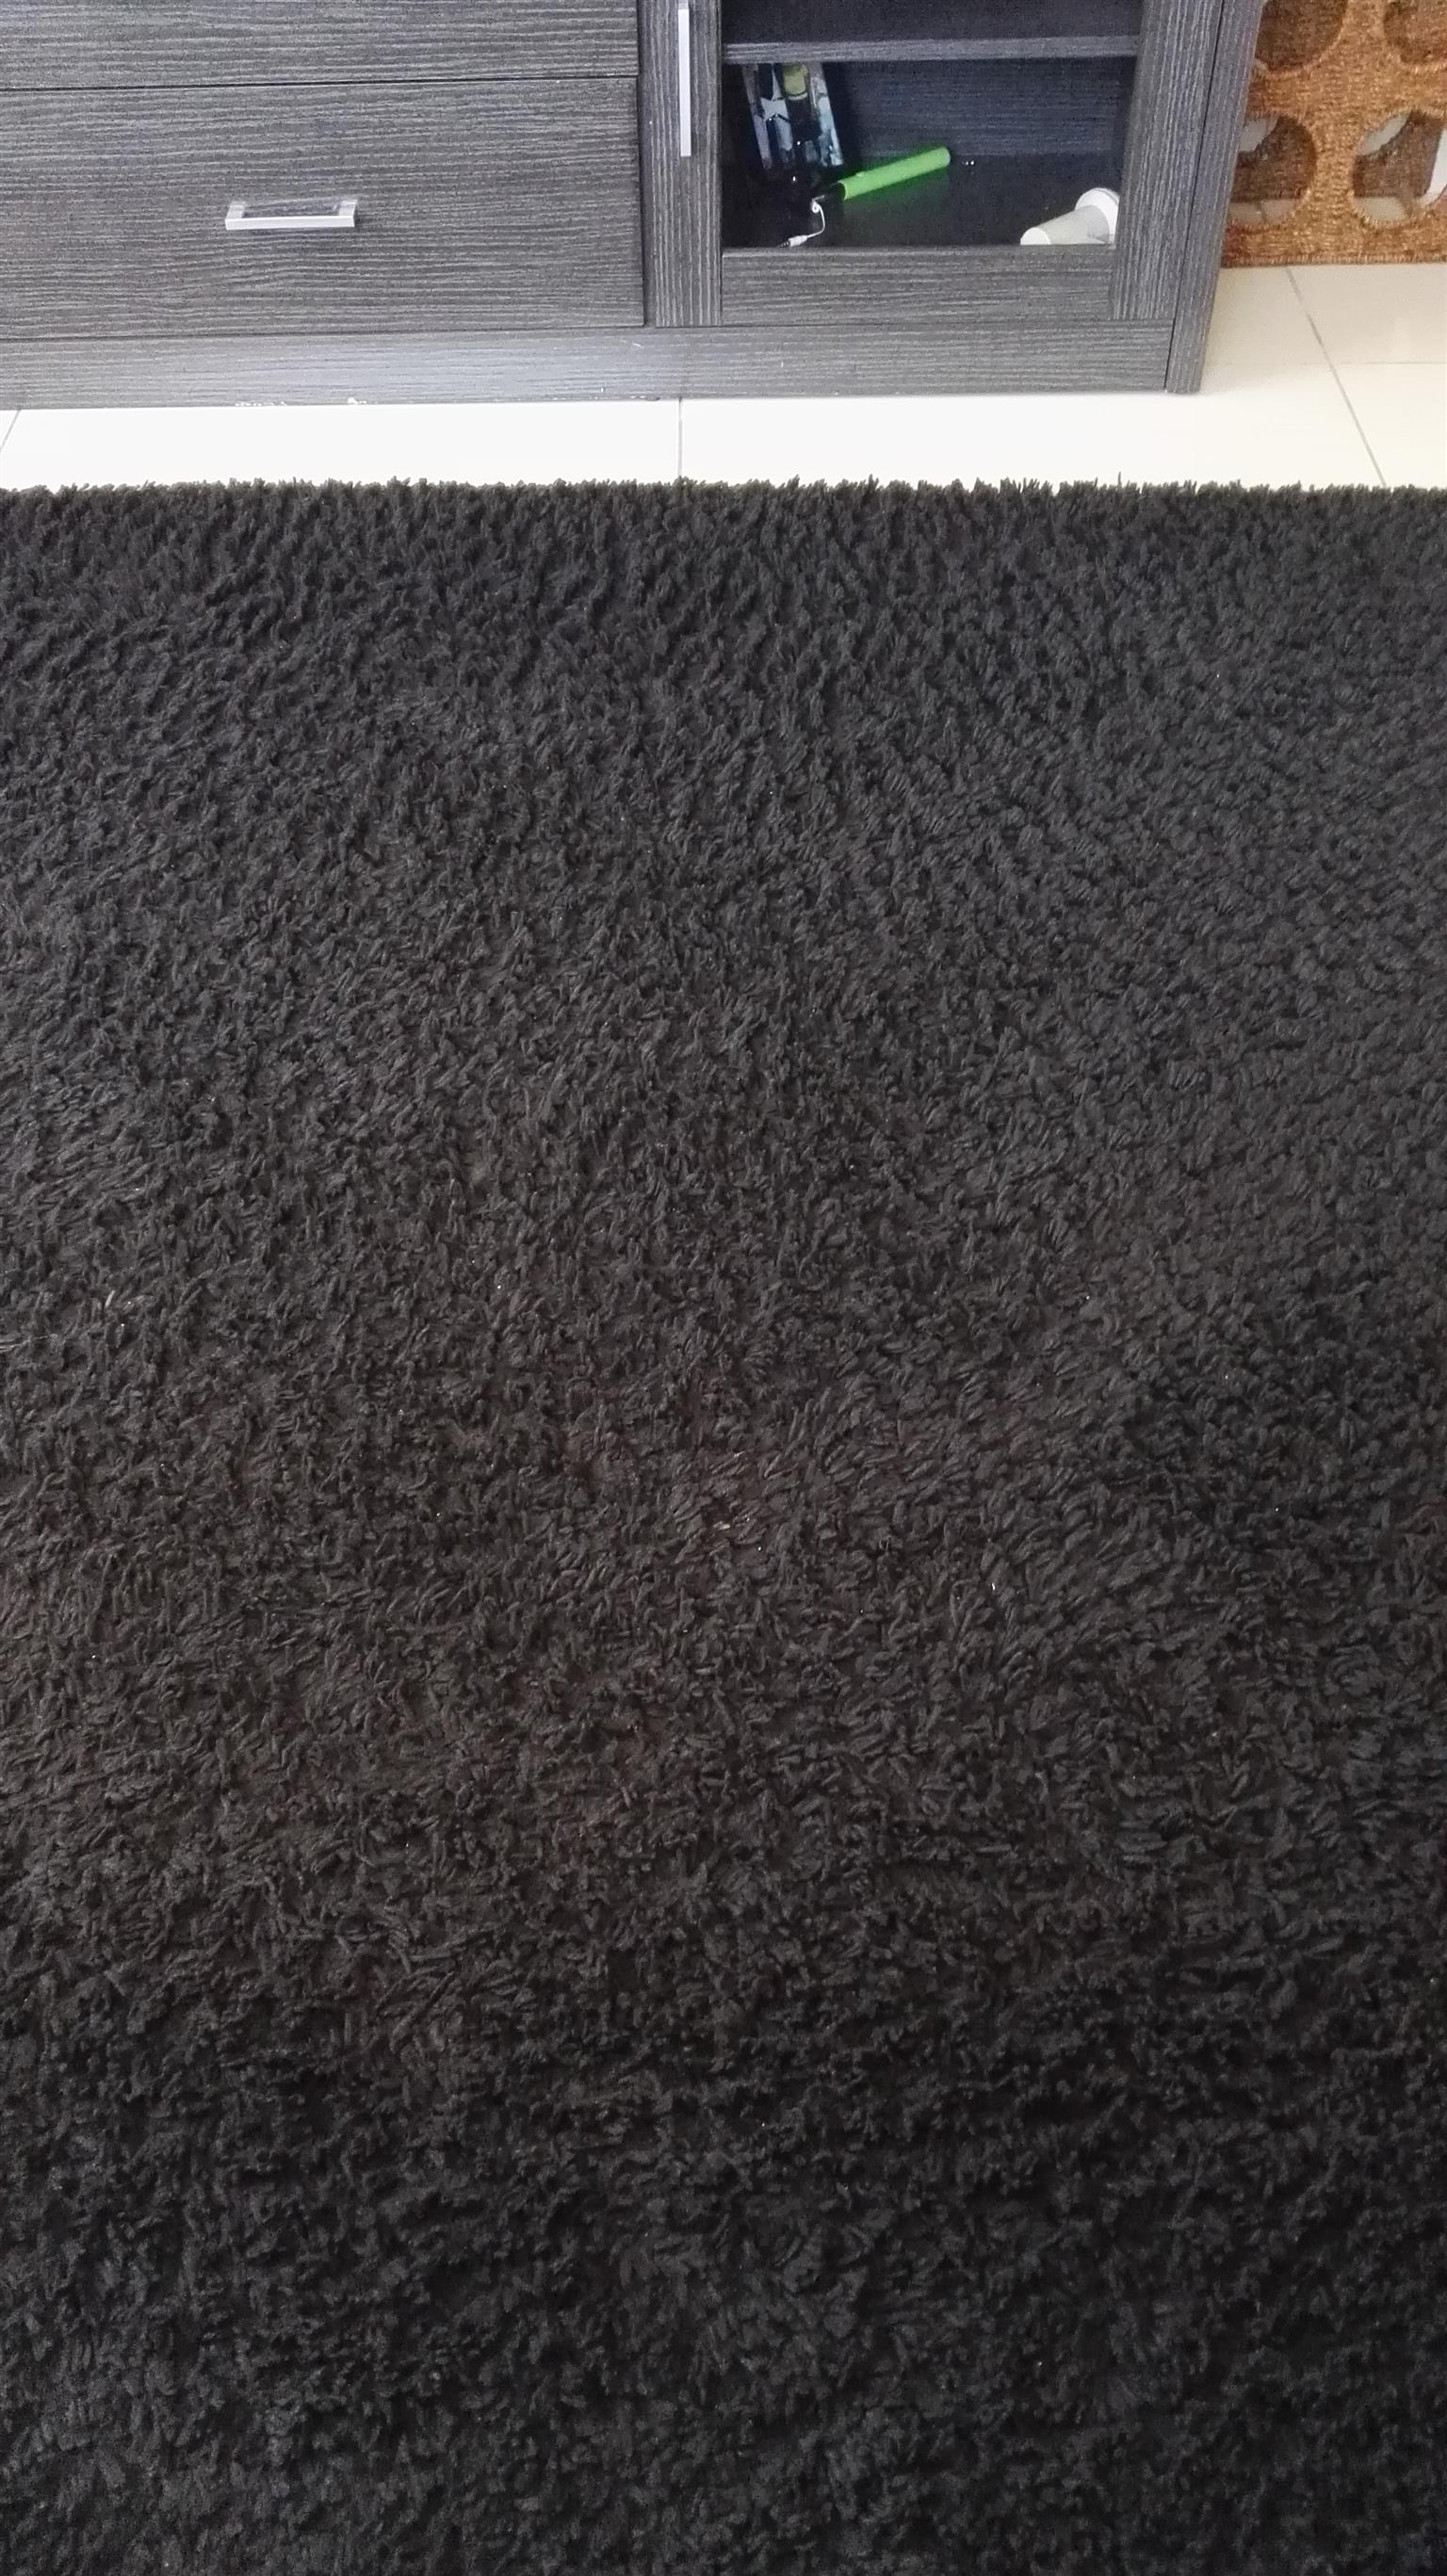 Carpet and laces for sale